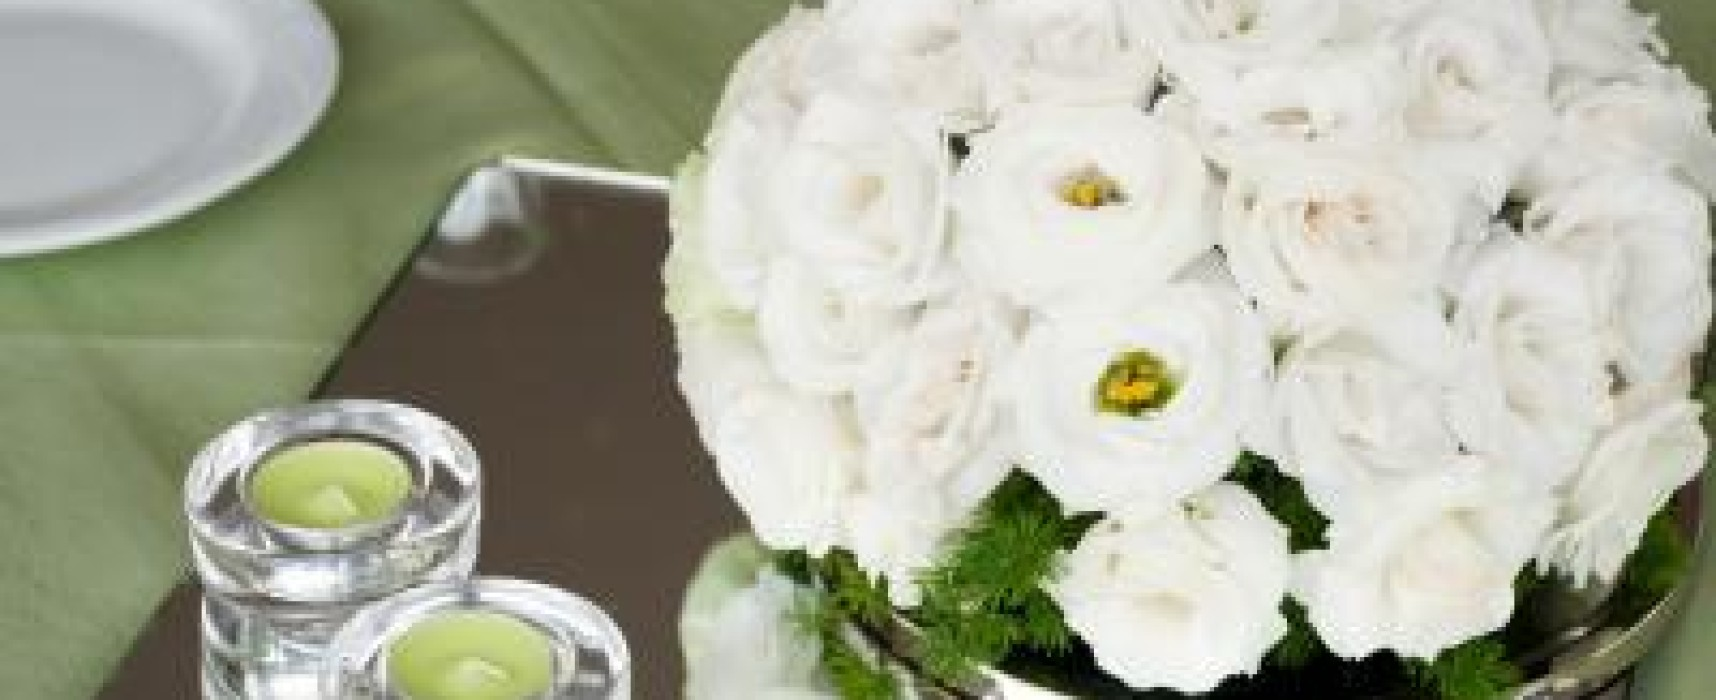 Some Top Ways to Make Your Wedding More Personal